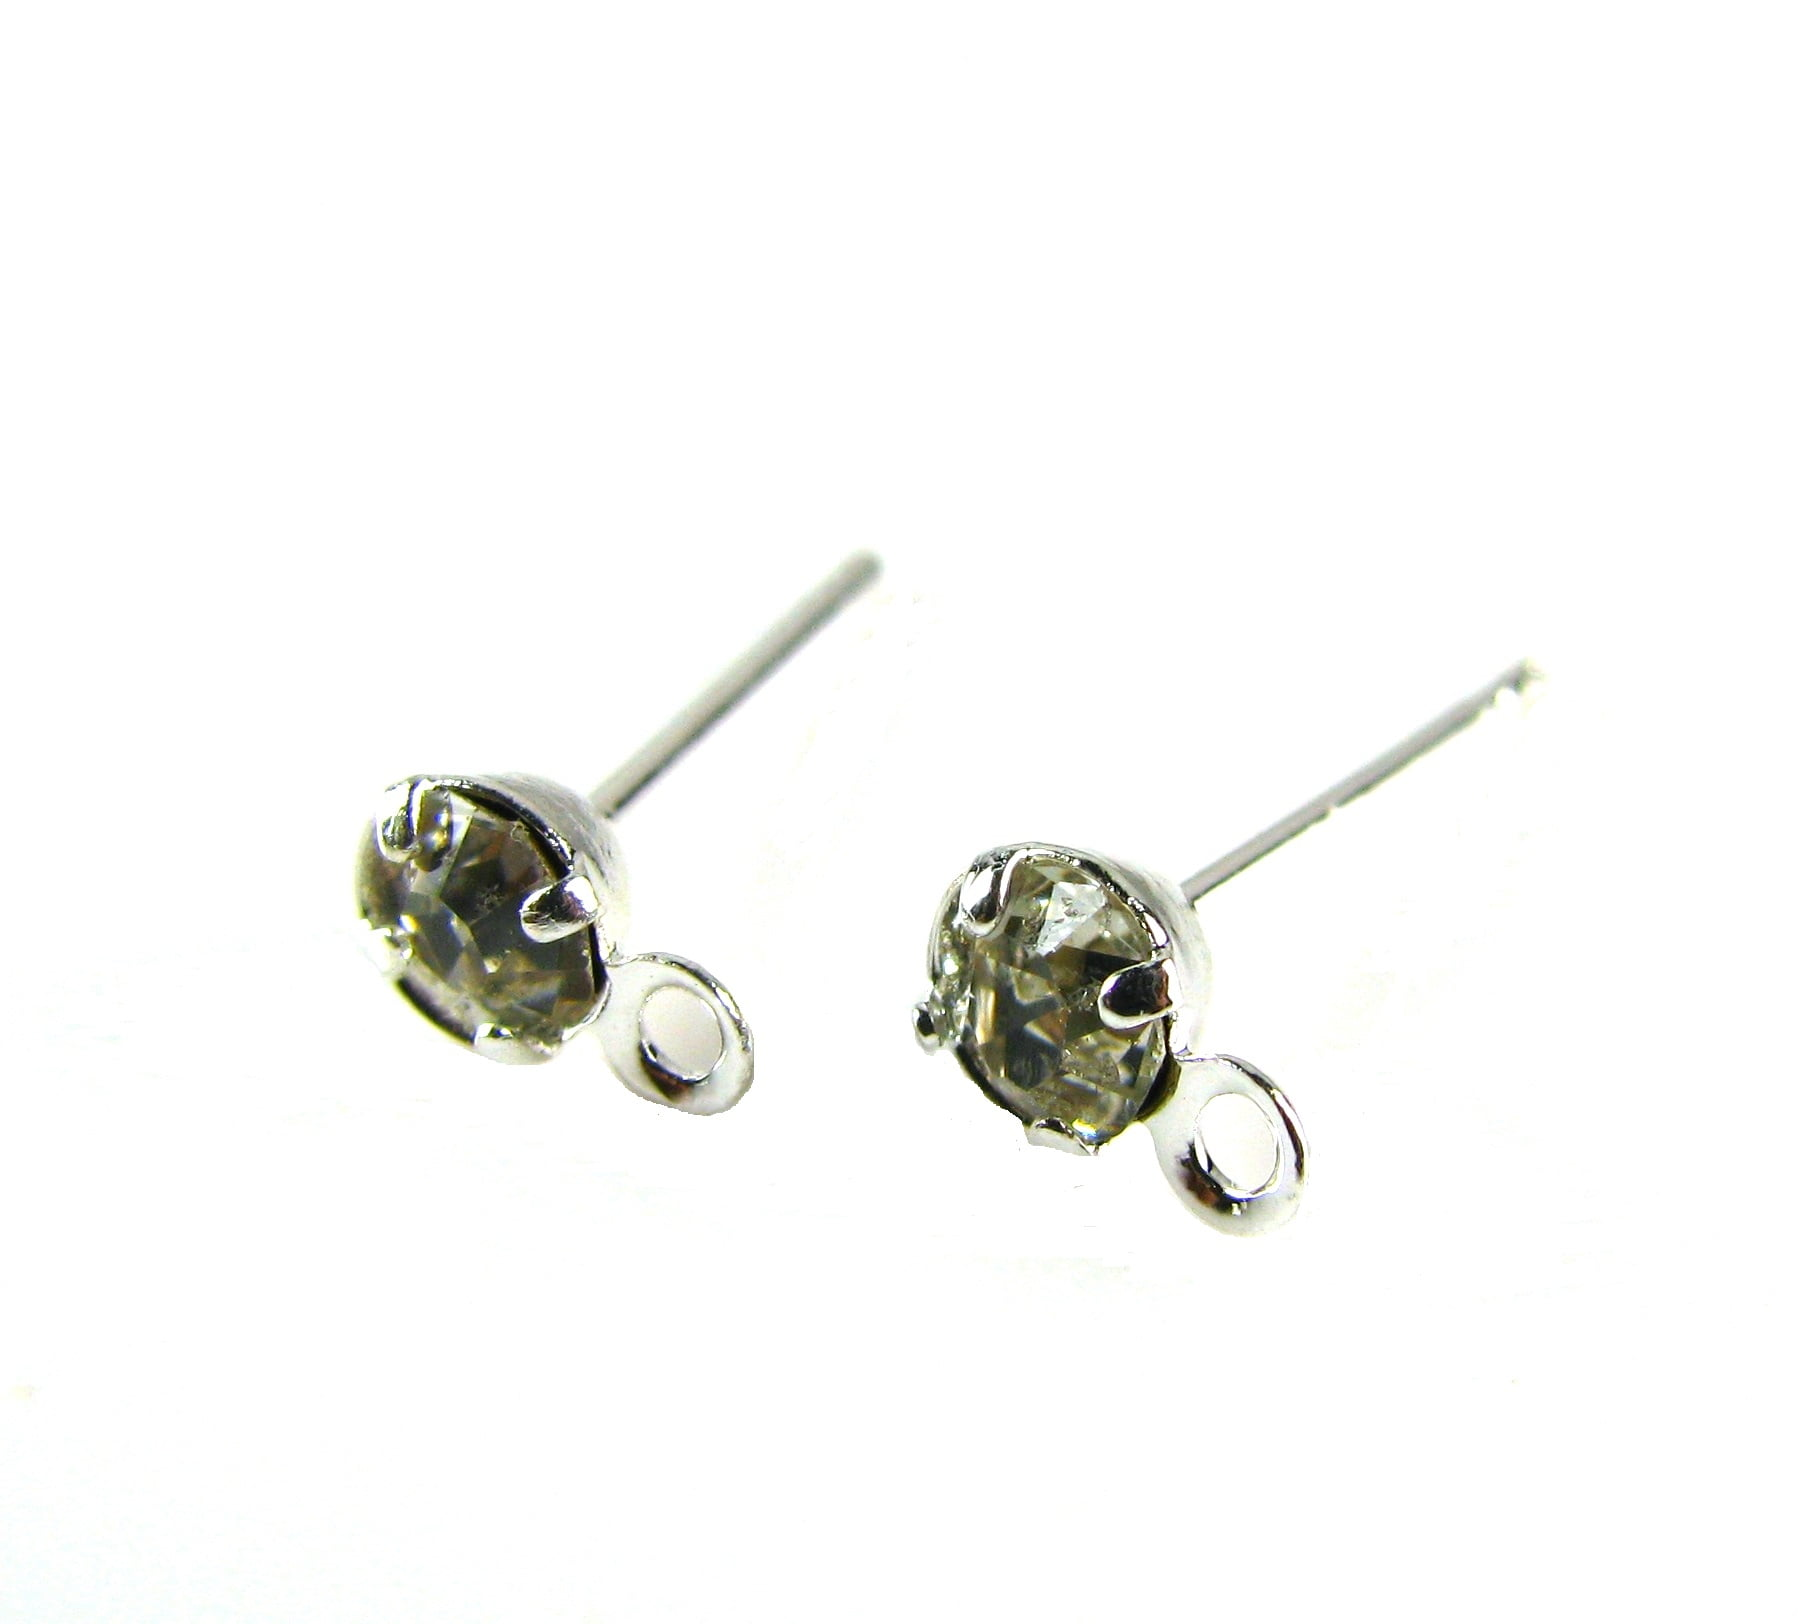 Silver Plated Ear Studs With Crystals Per Pair